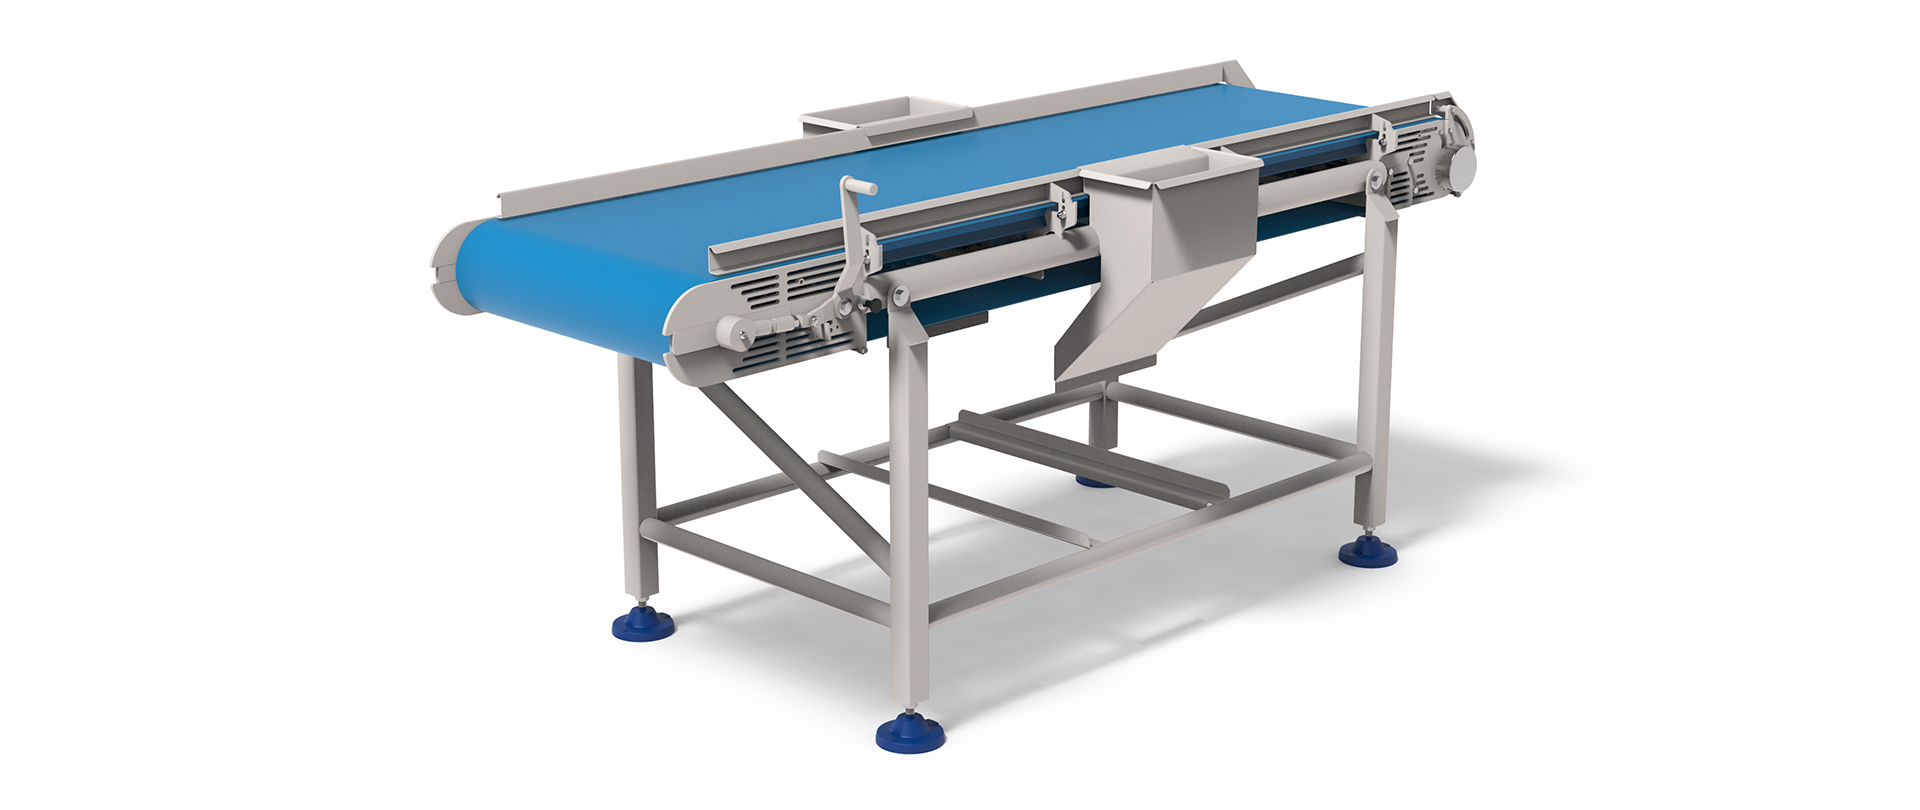 Inspection Table LT